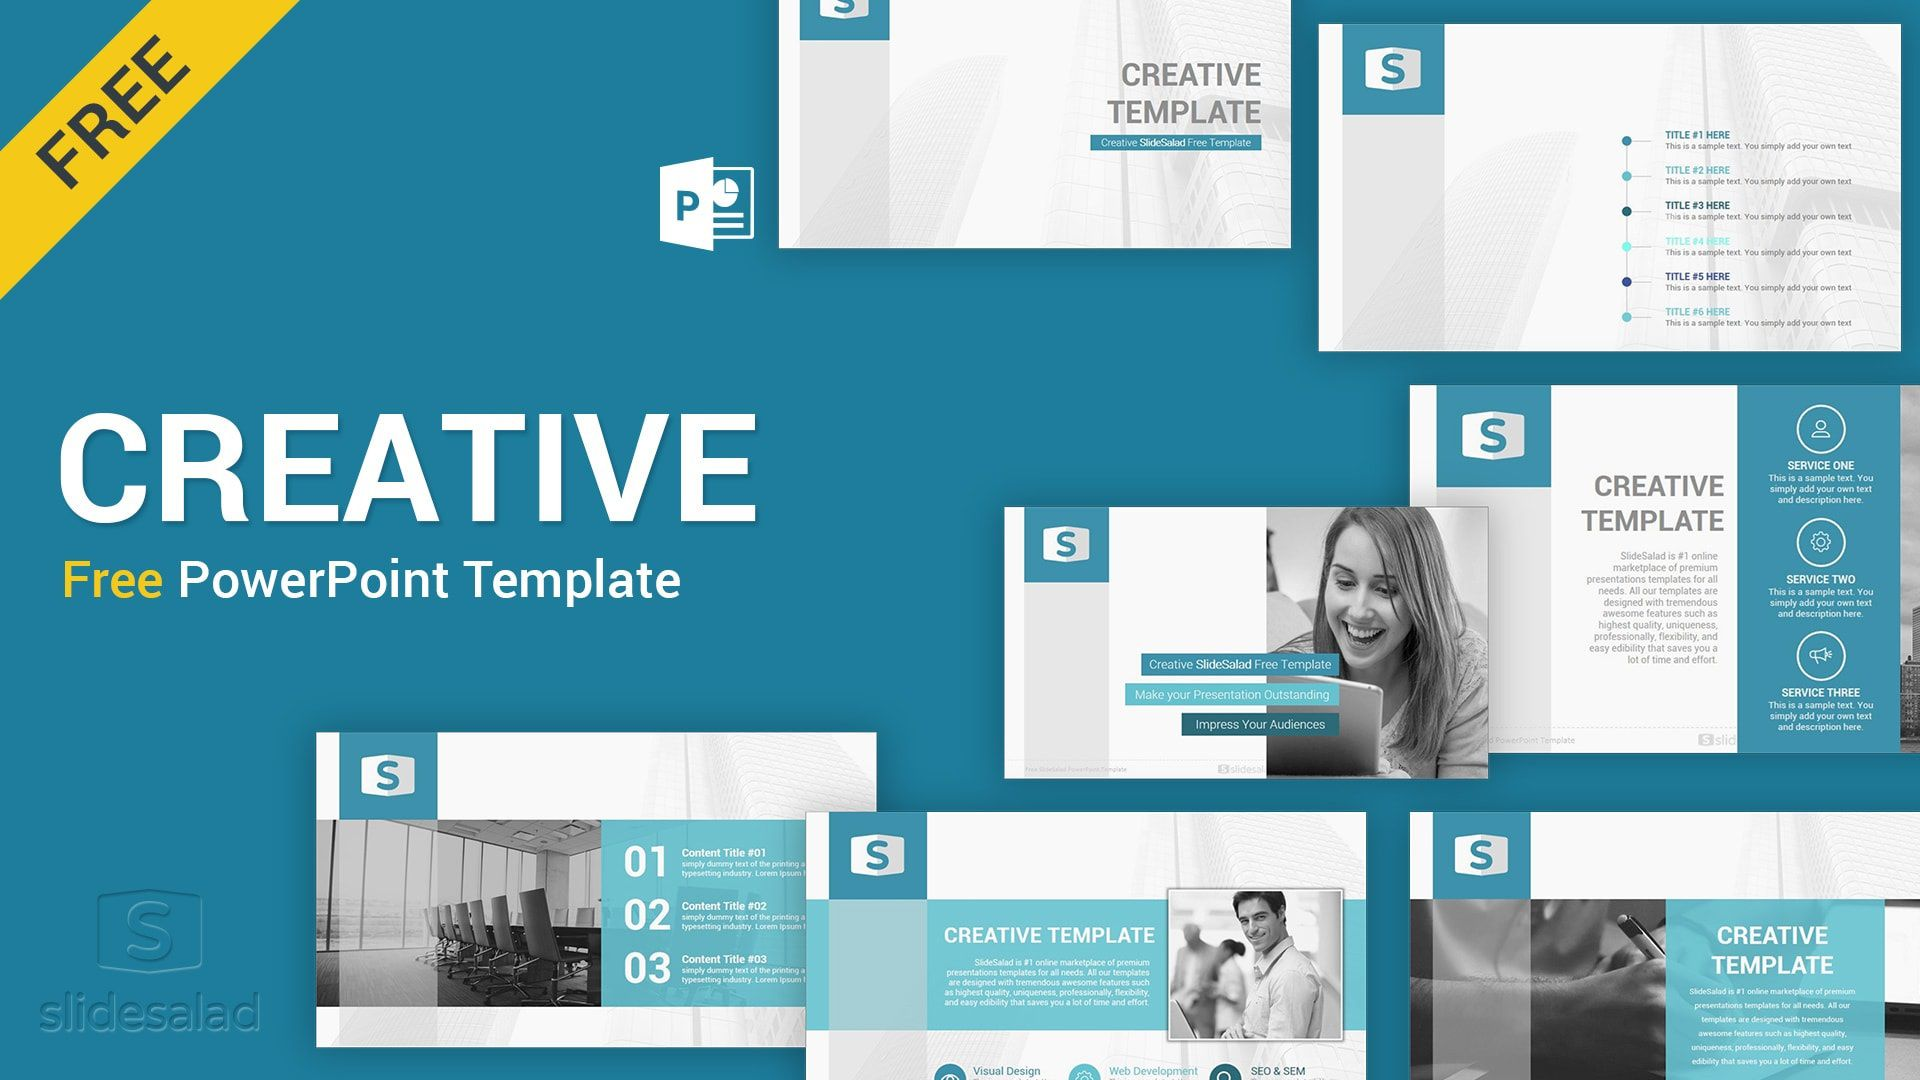 005 Best Free Downloadable Powerpoint Template Idea  Templates Download Animated Background Design ThemeFull